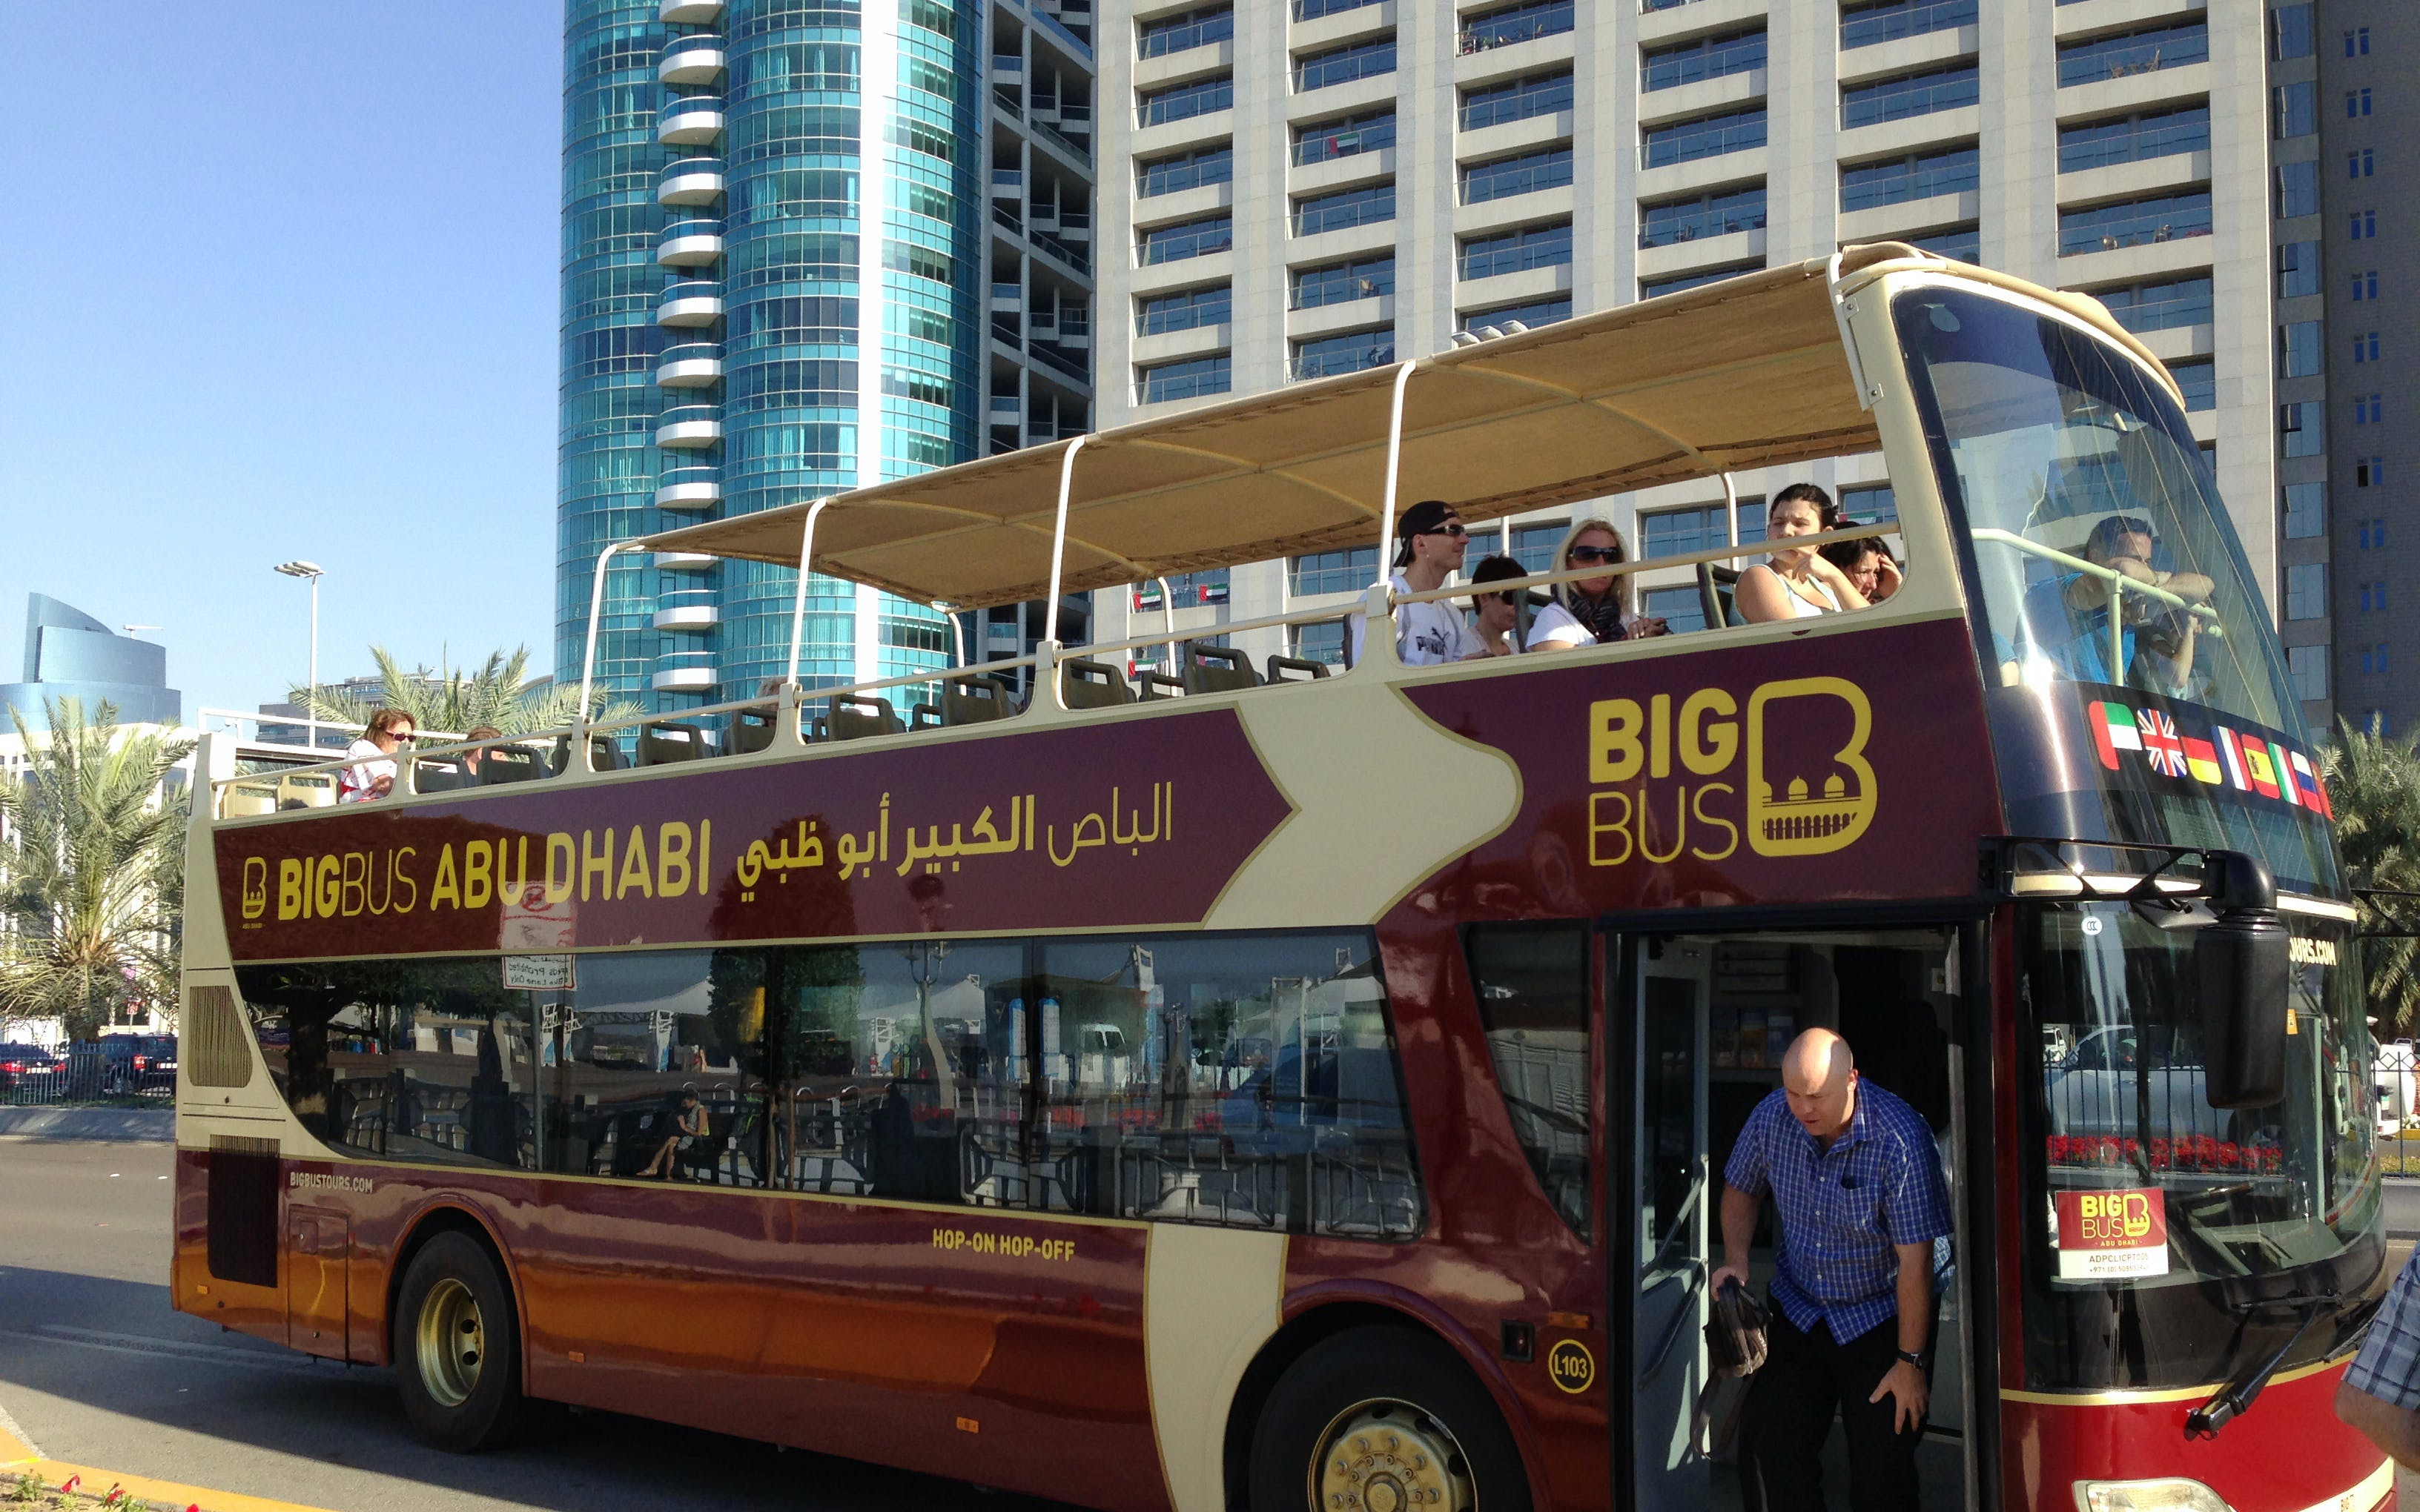 abu dhabi & dubai big bus hop-on hop-off combo-2